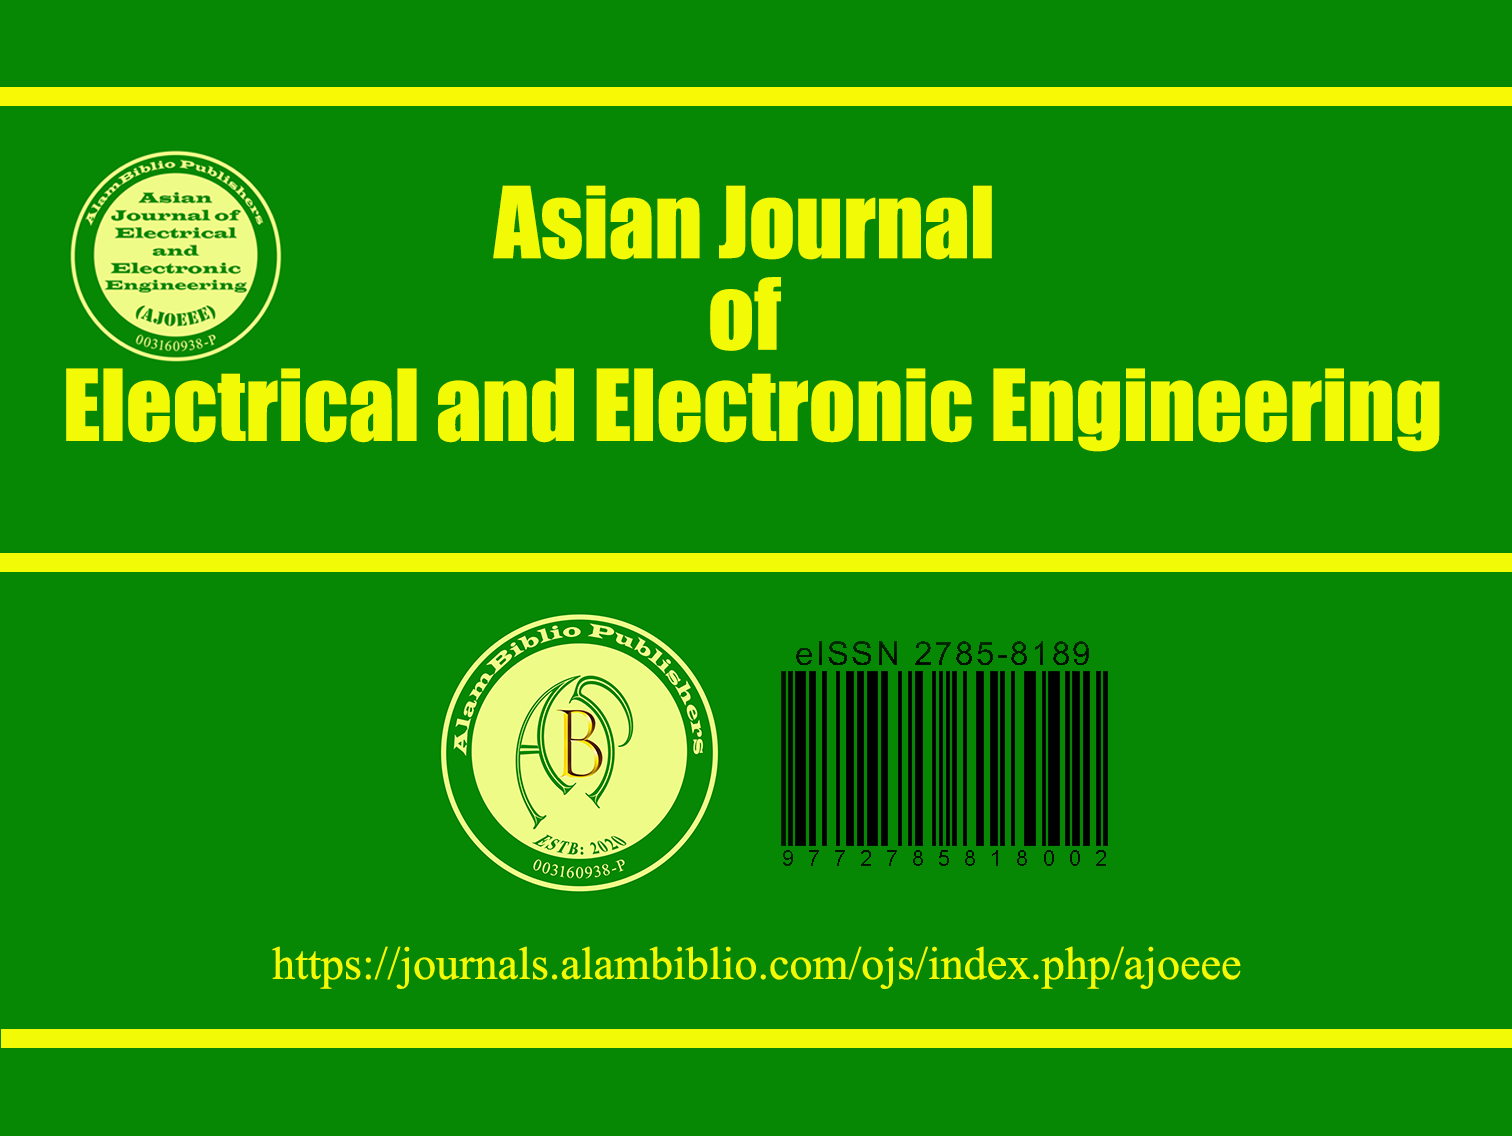 Asian Journal of Electrical and Electronic Engineering